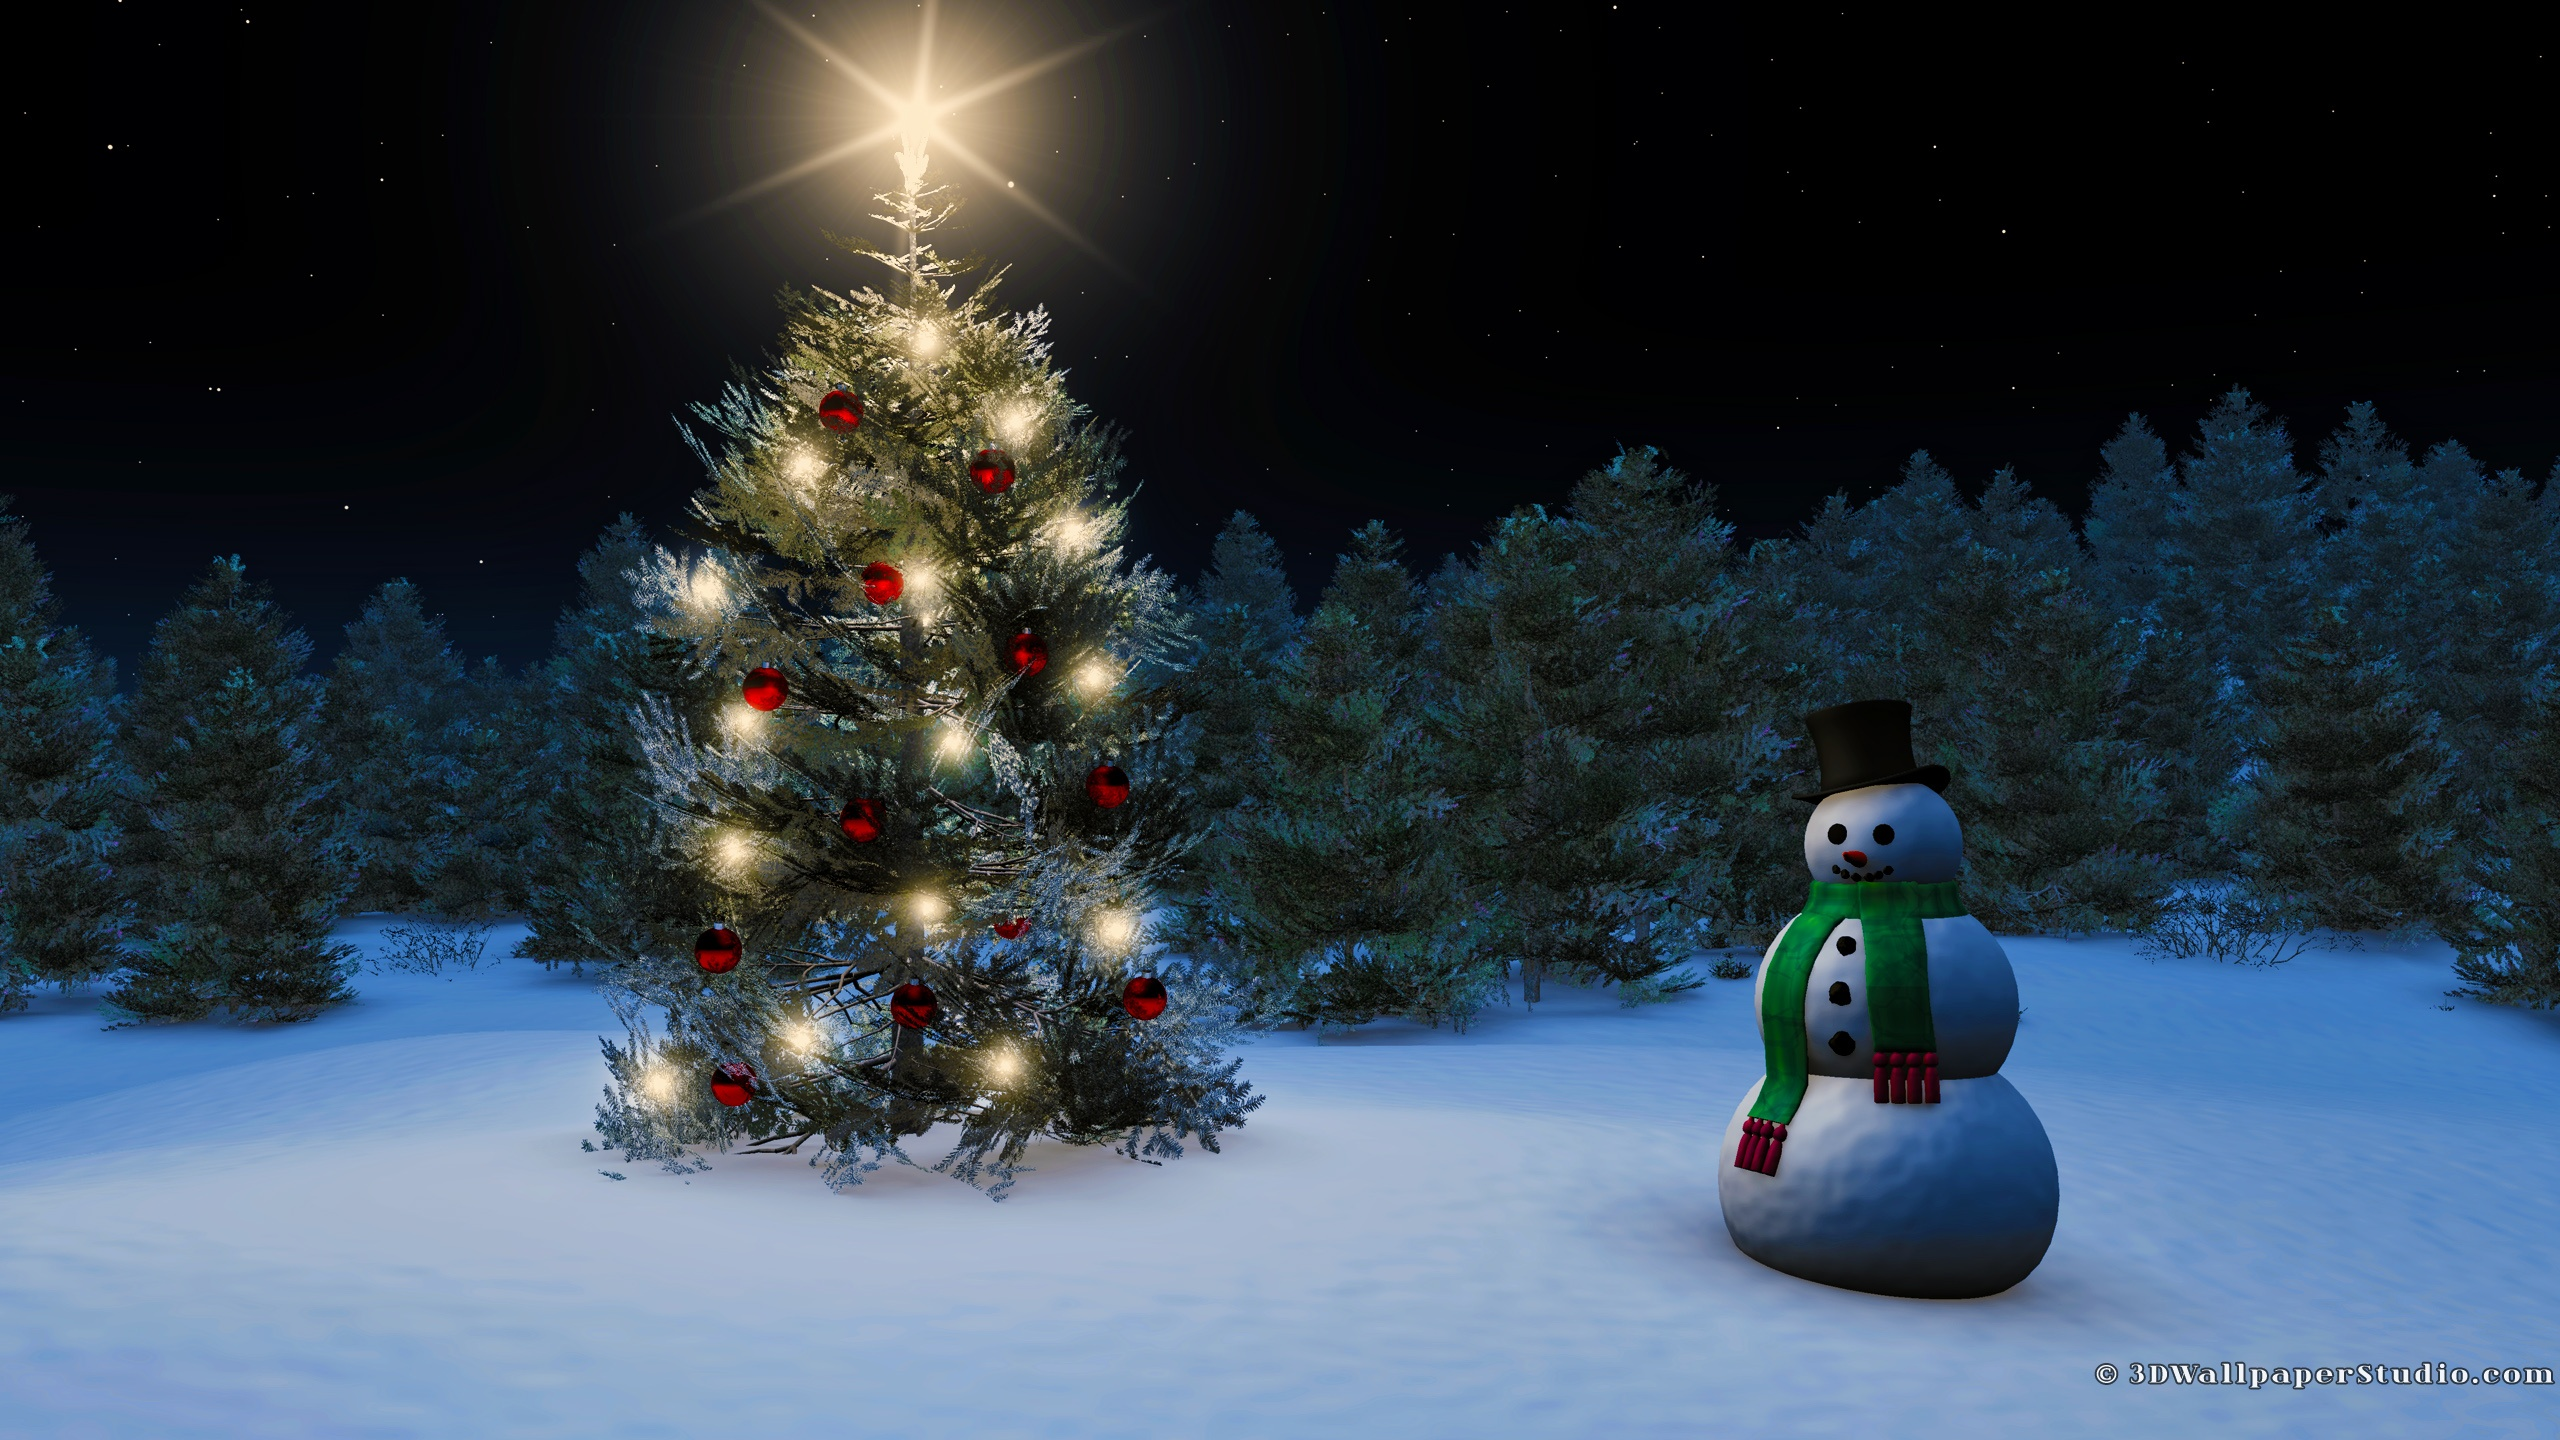 Christmas wallpaper in 2560x1440 screen resolution 2560x1440